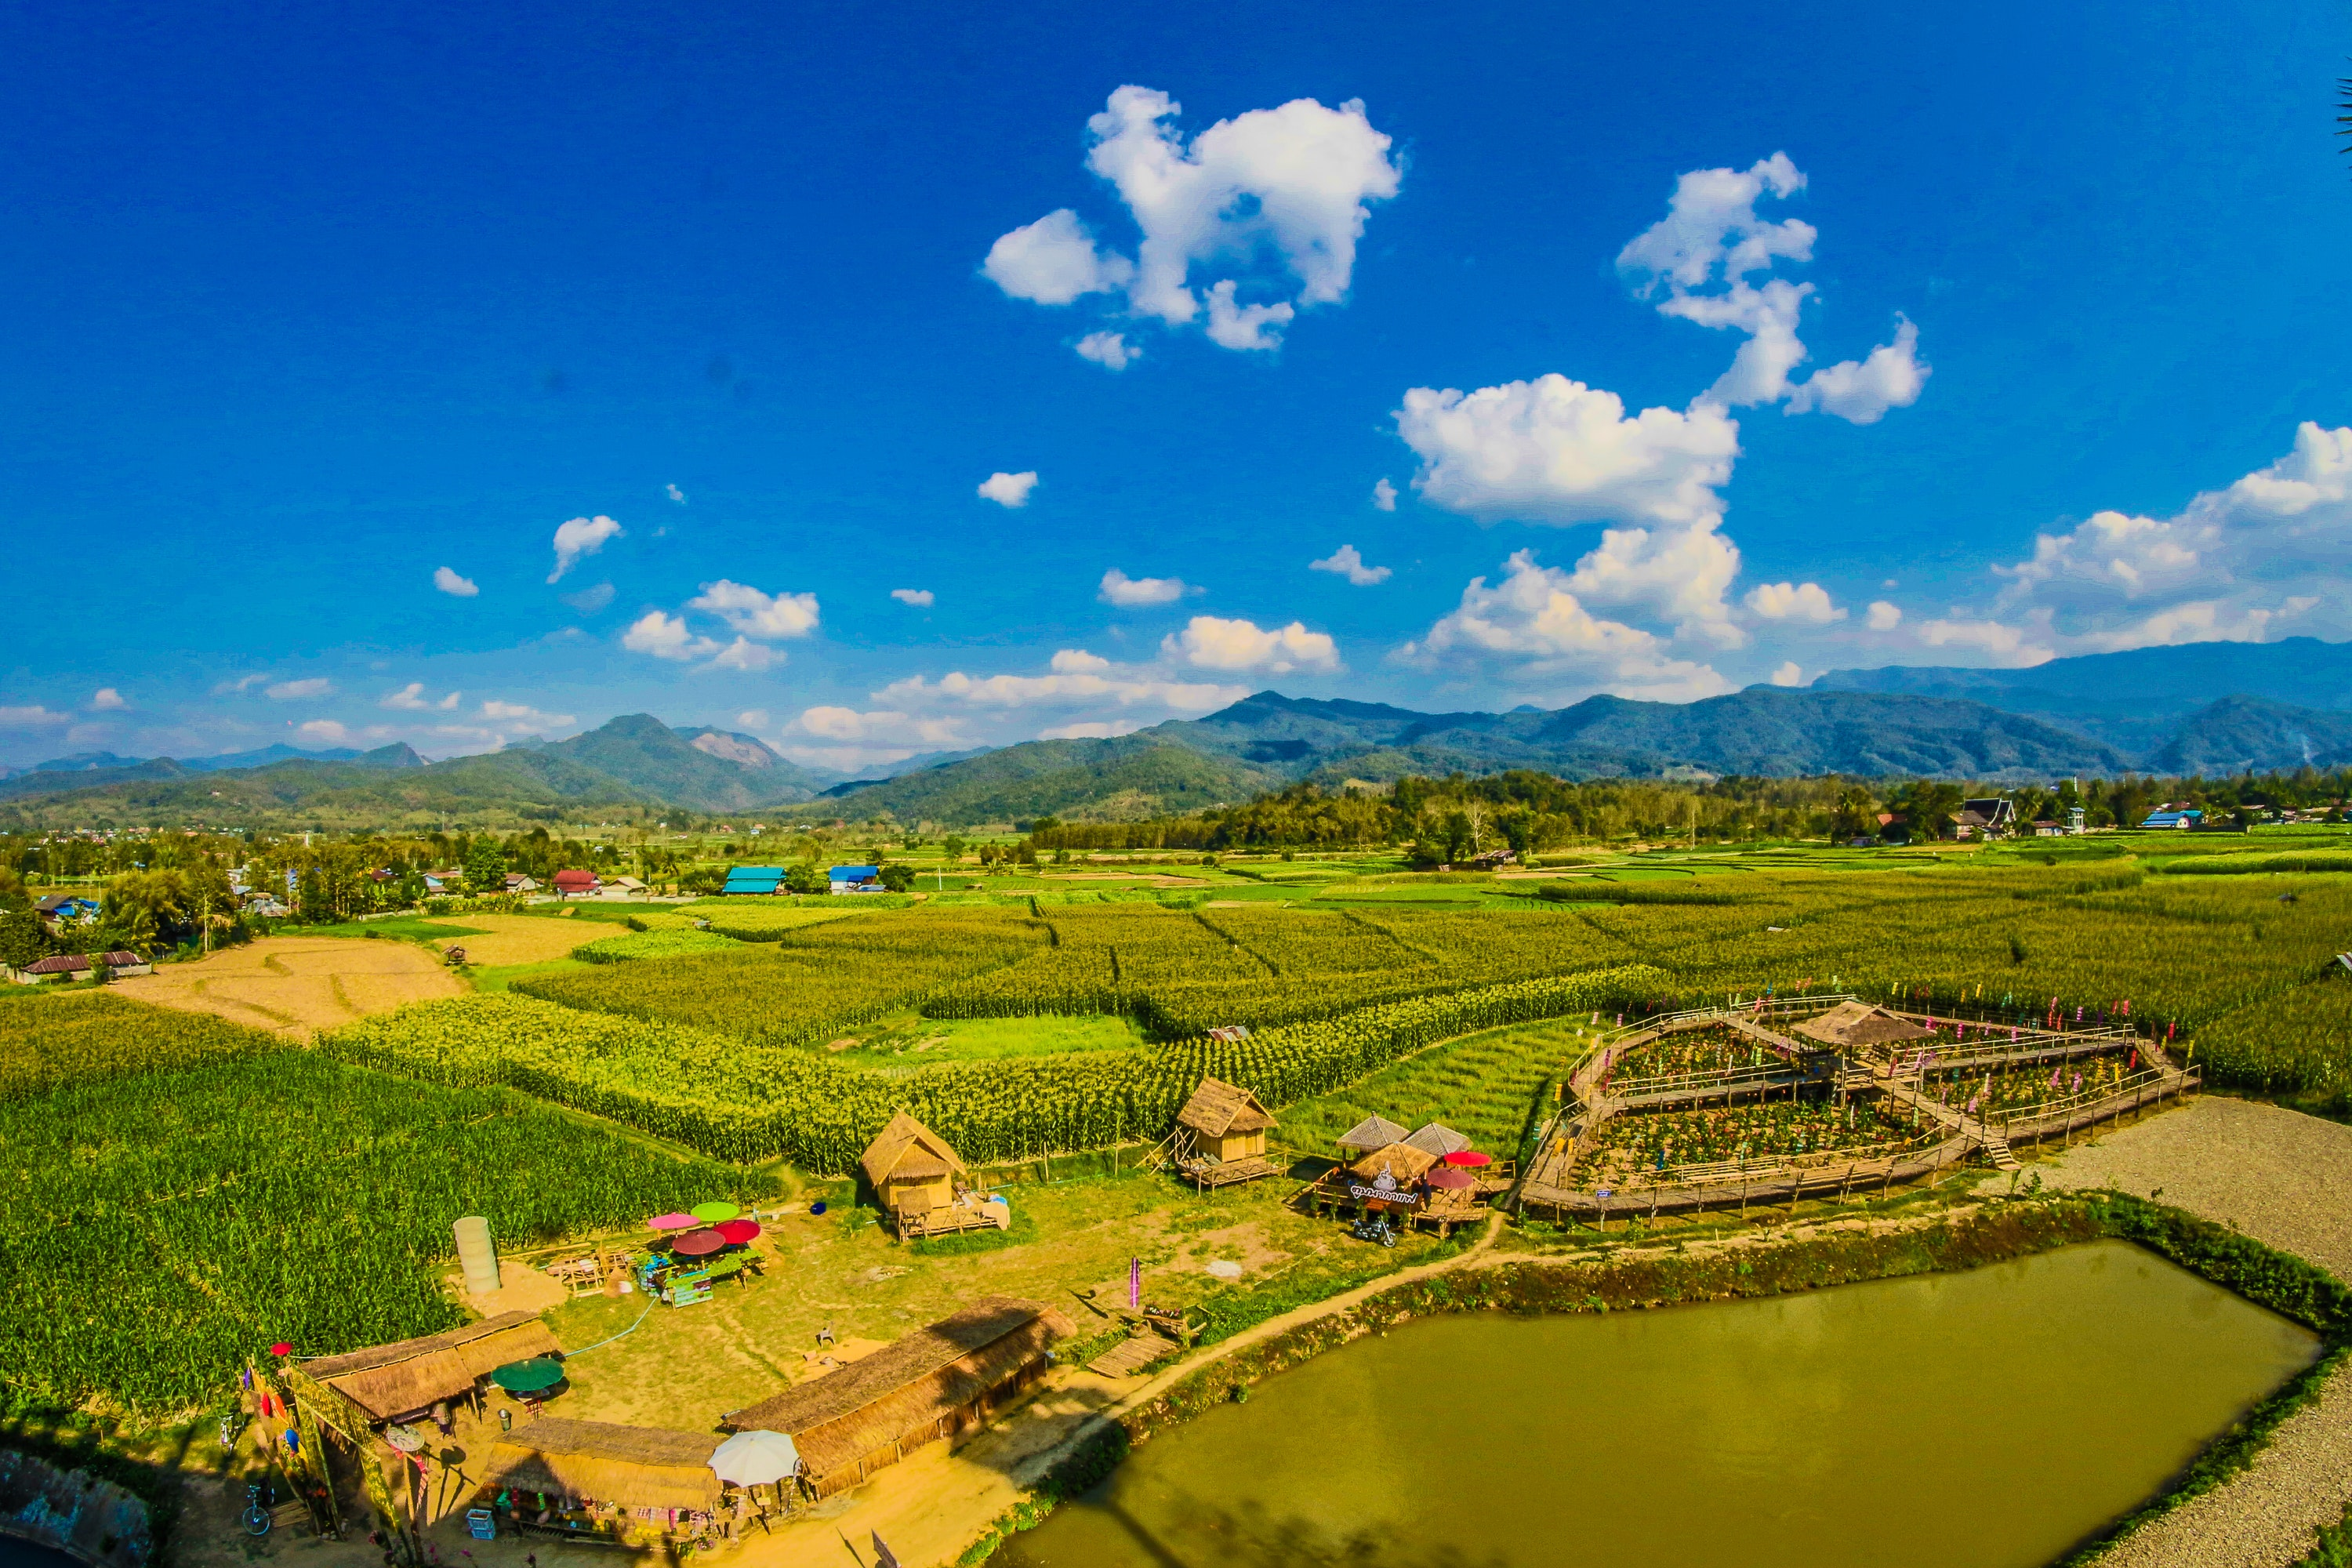 Rice field with mountain and houses during cloudy day photo